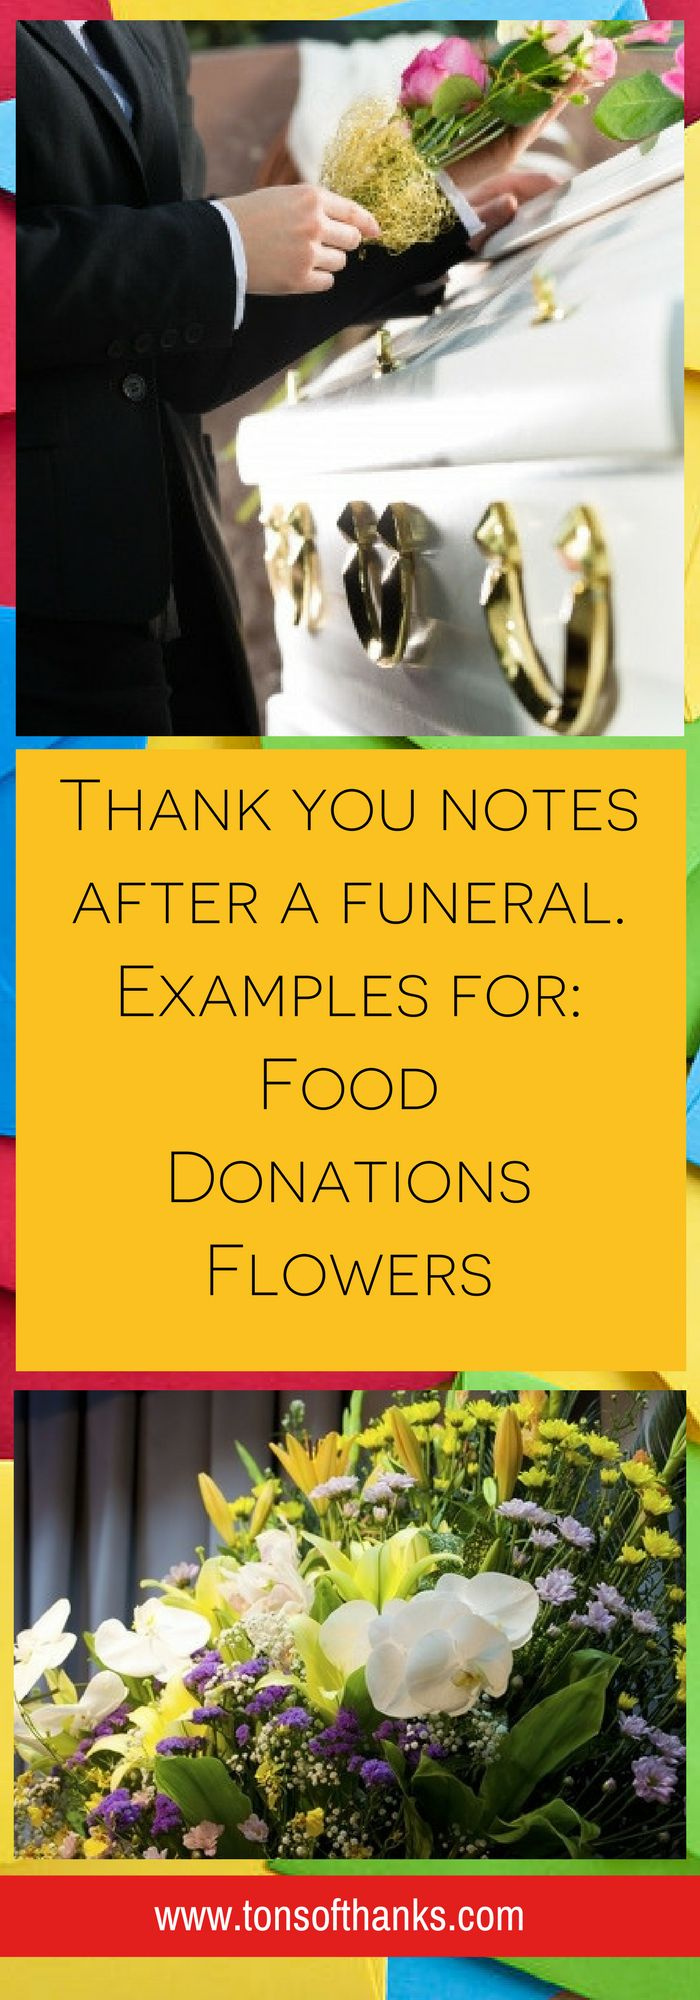 Thank you note wording examples for after funeral for flowers, donations, and food examples for helping you know what to say in your thank-you notes!